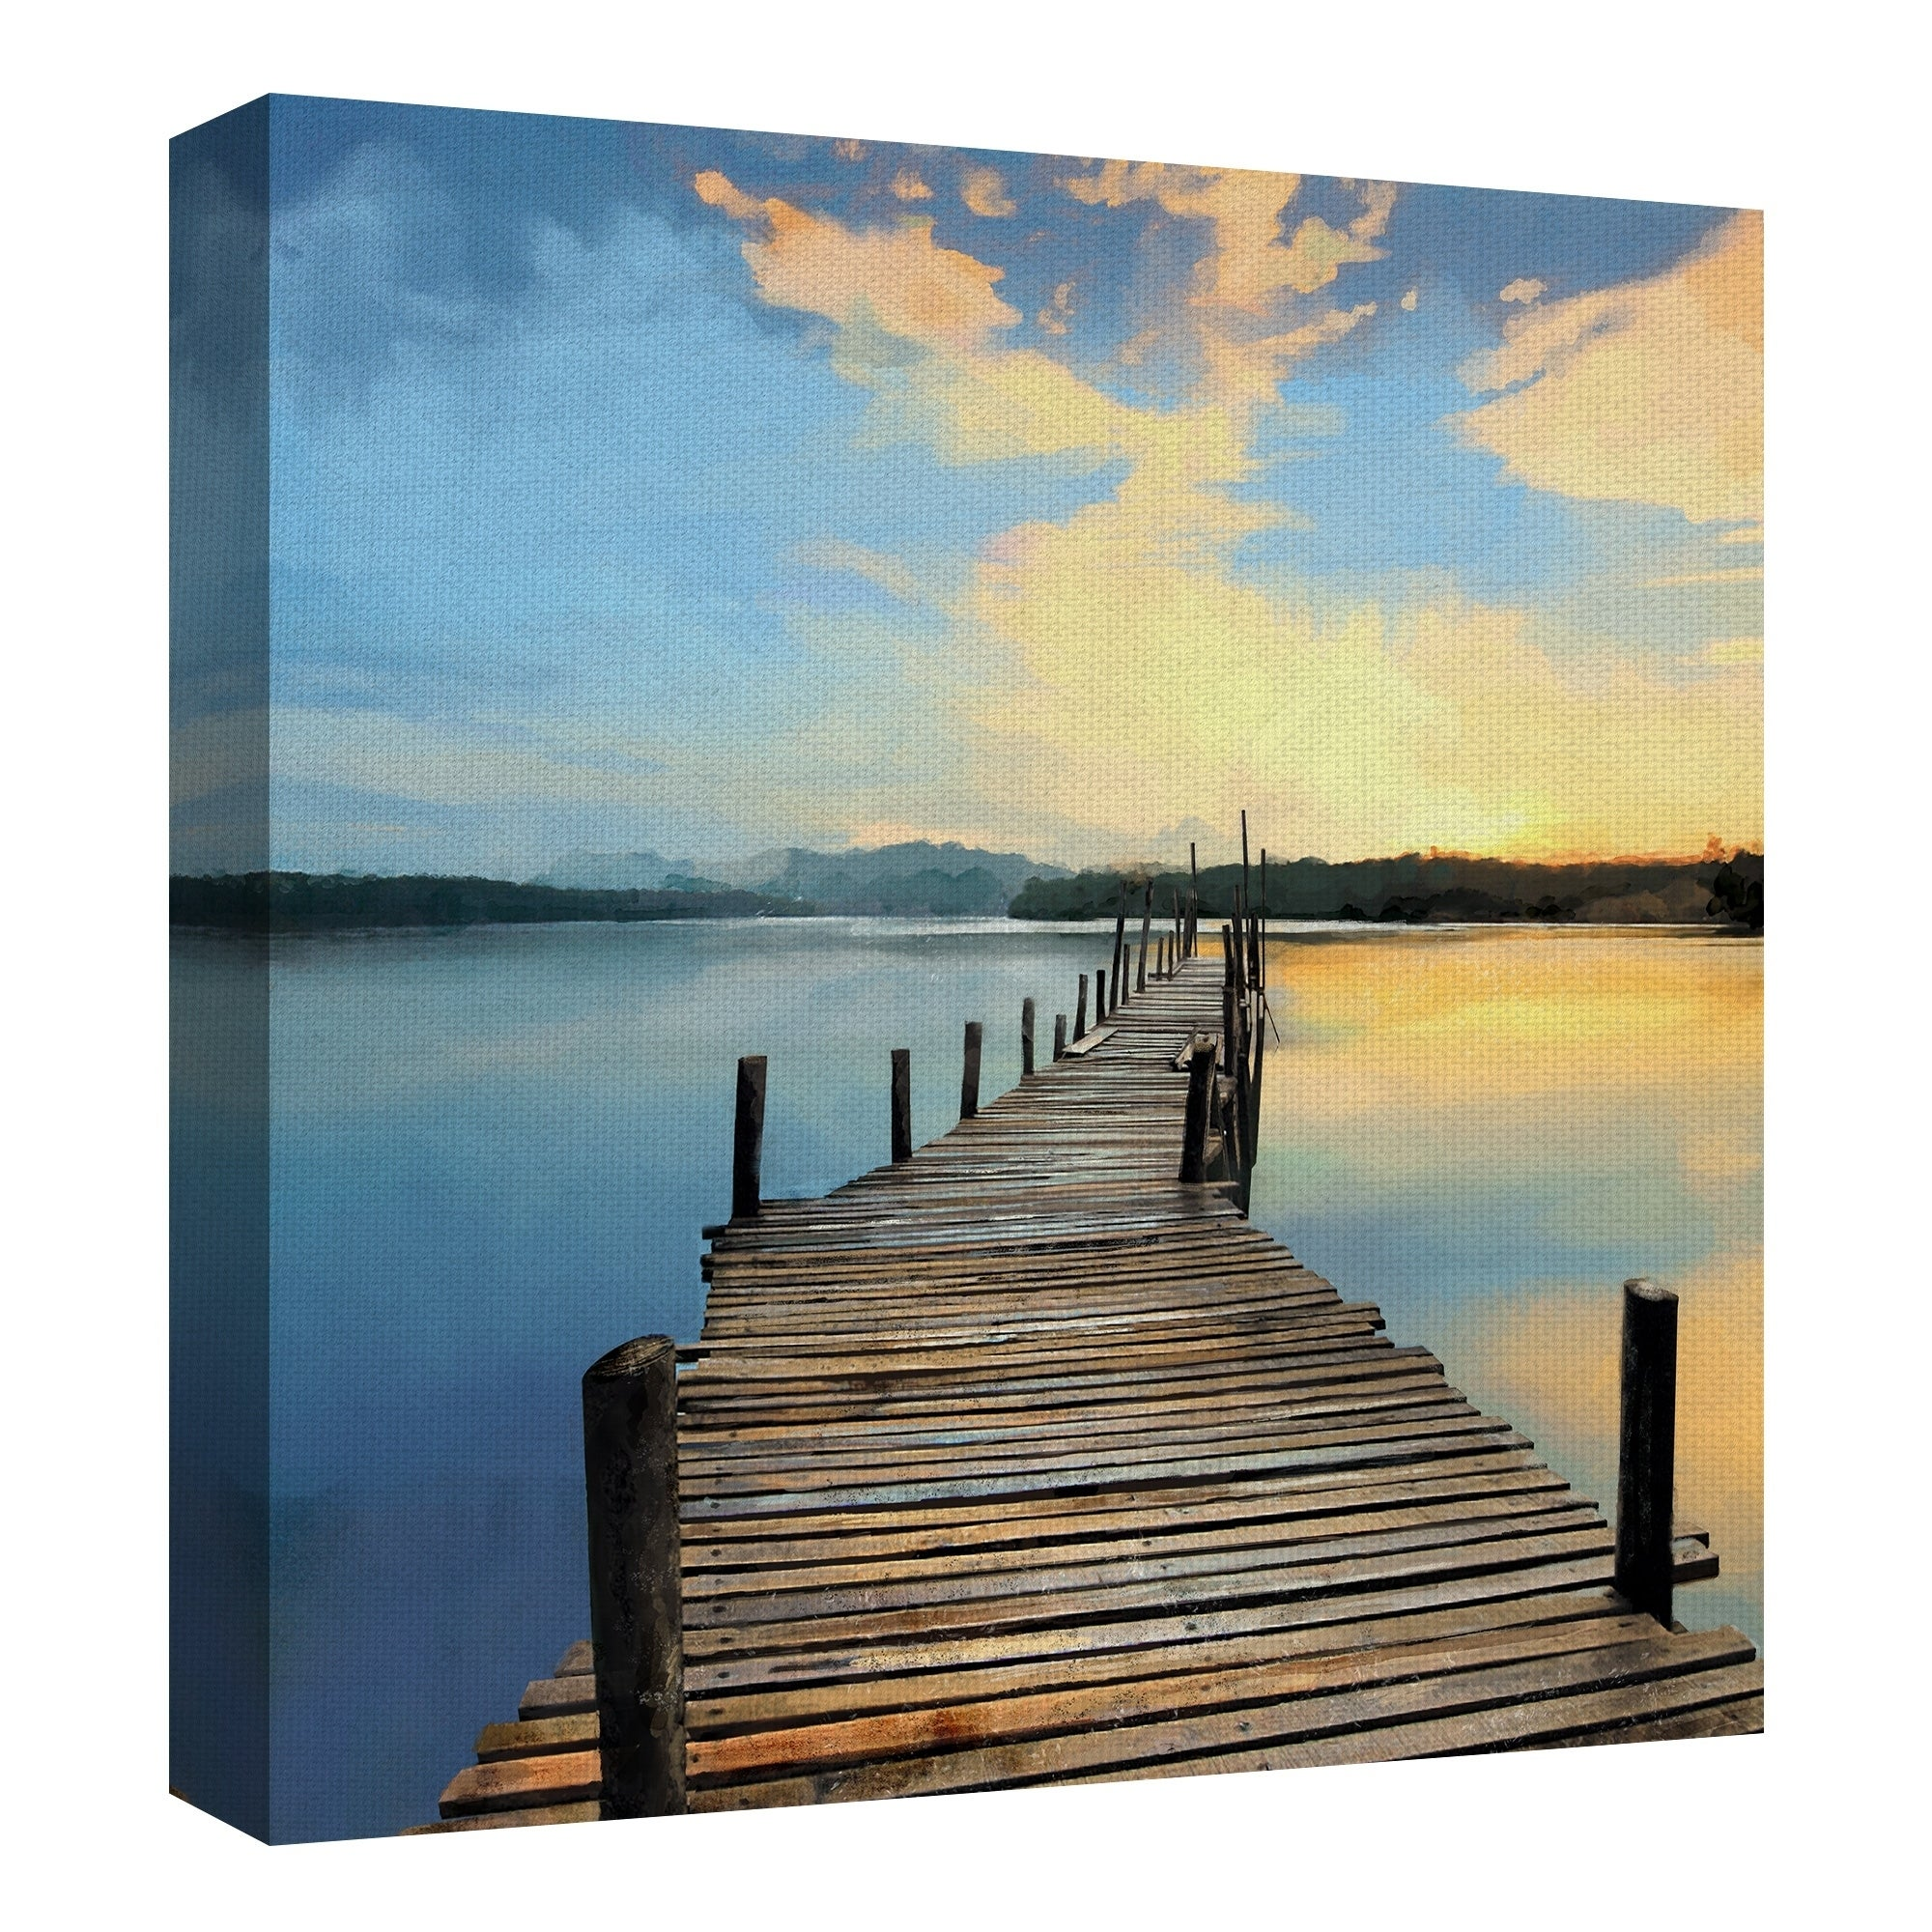 Sunset Pier Wrapped Canvas Art Print Overstock 26050510